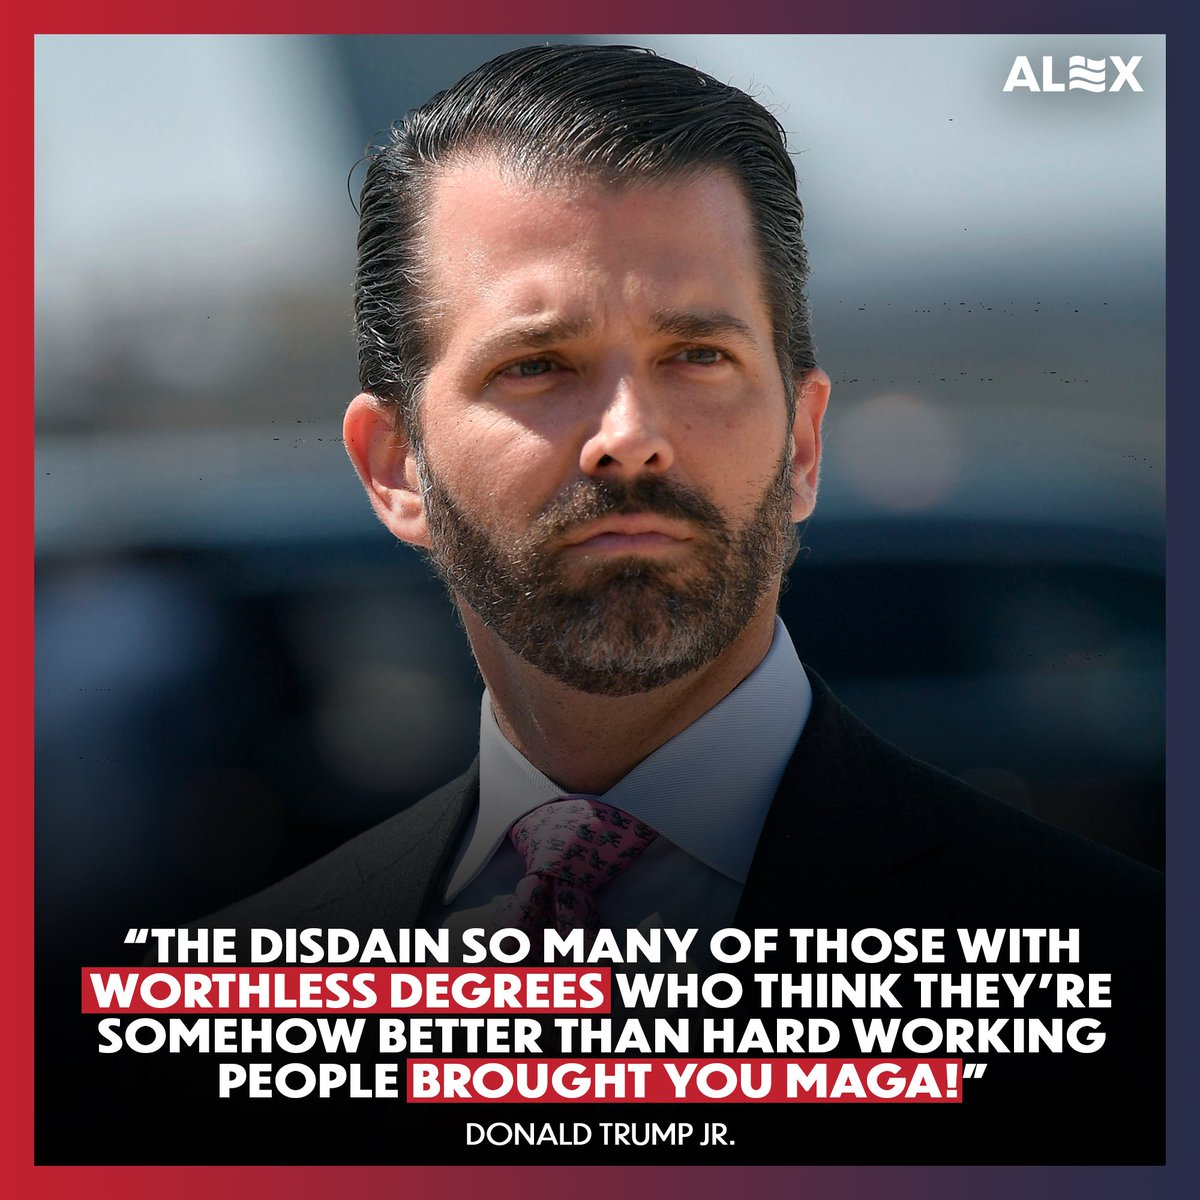 Replying to @alexbruesewitz: So true @DonaldJTrumpJr!